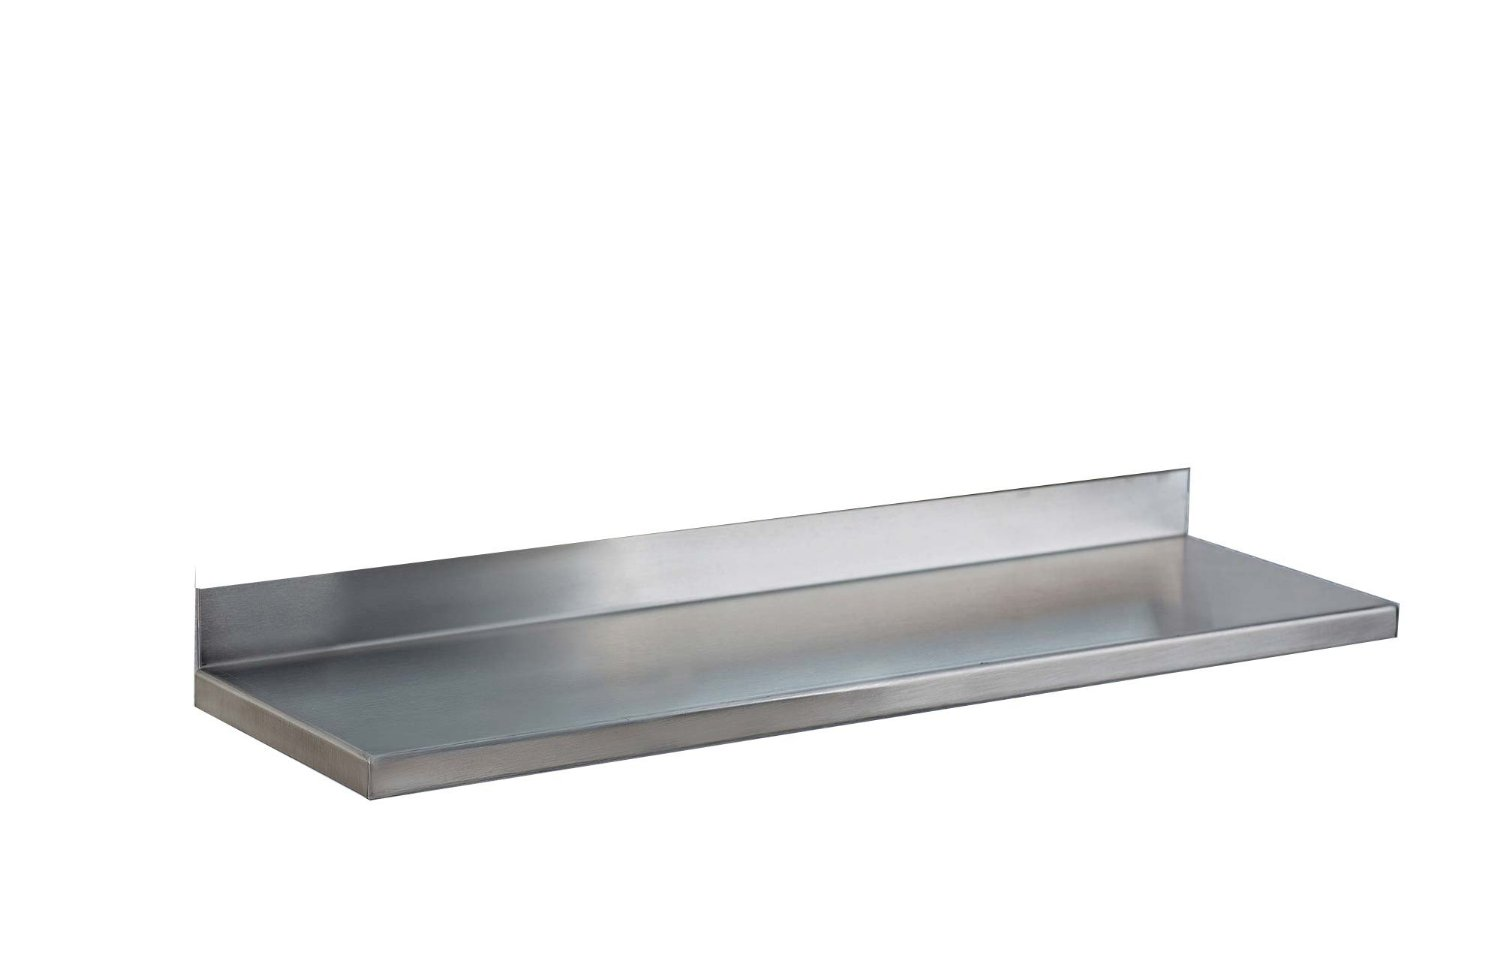 60-inch x 6-inch, Integral shelf, satin finish